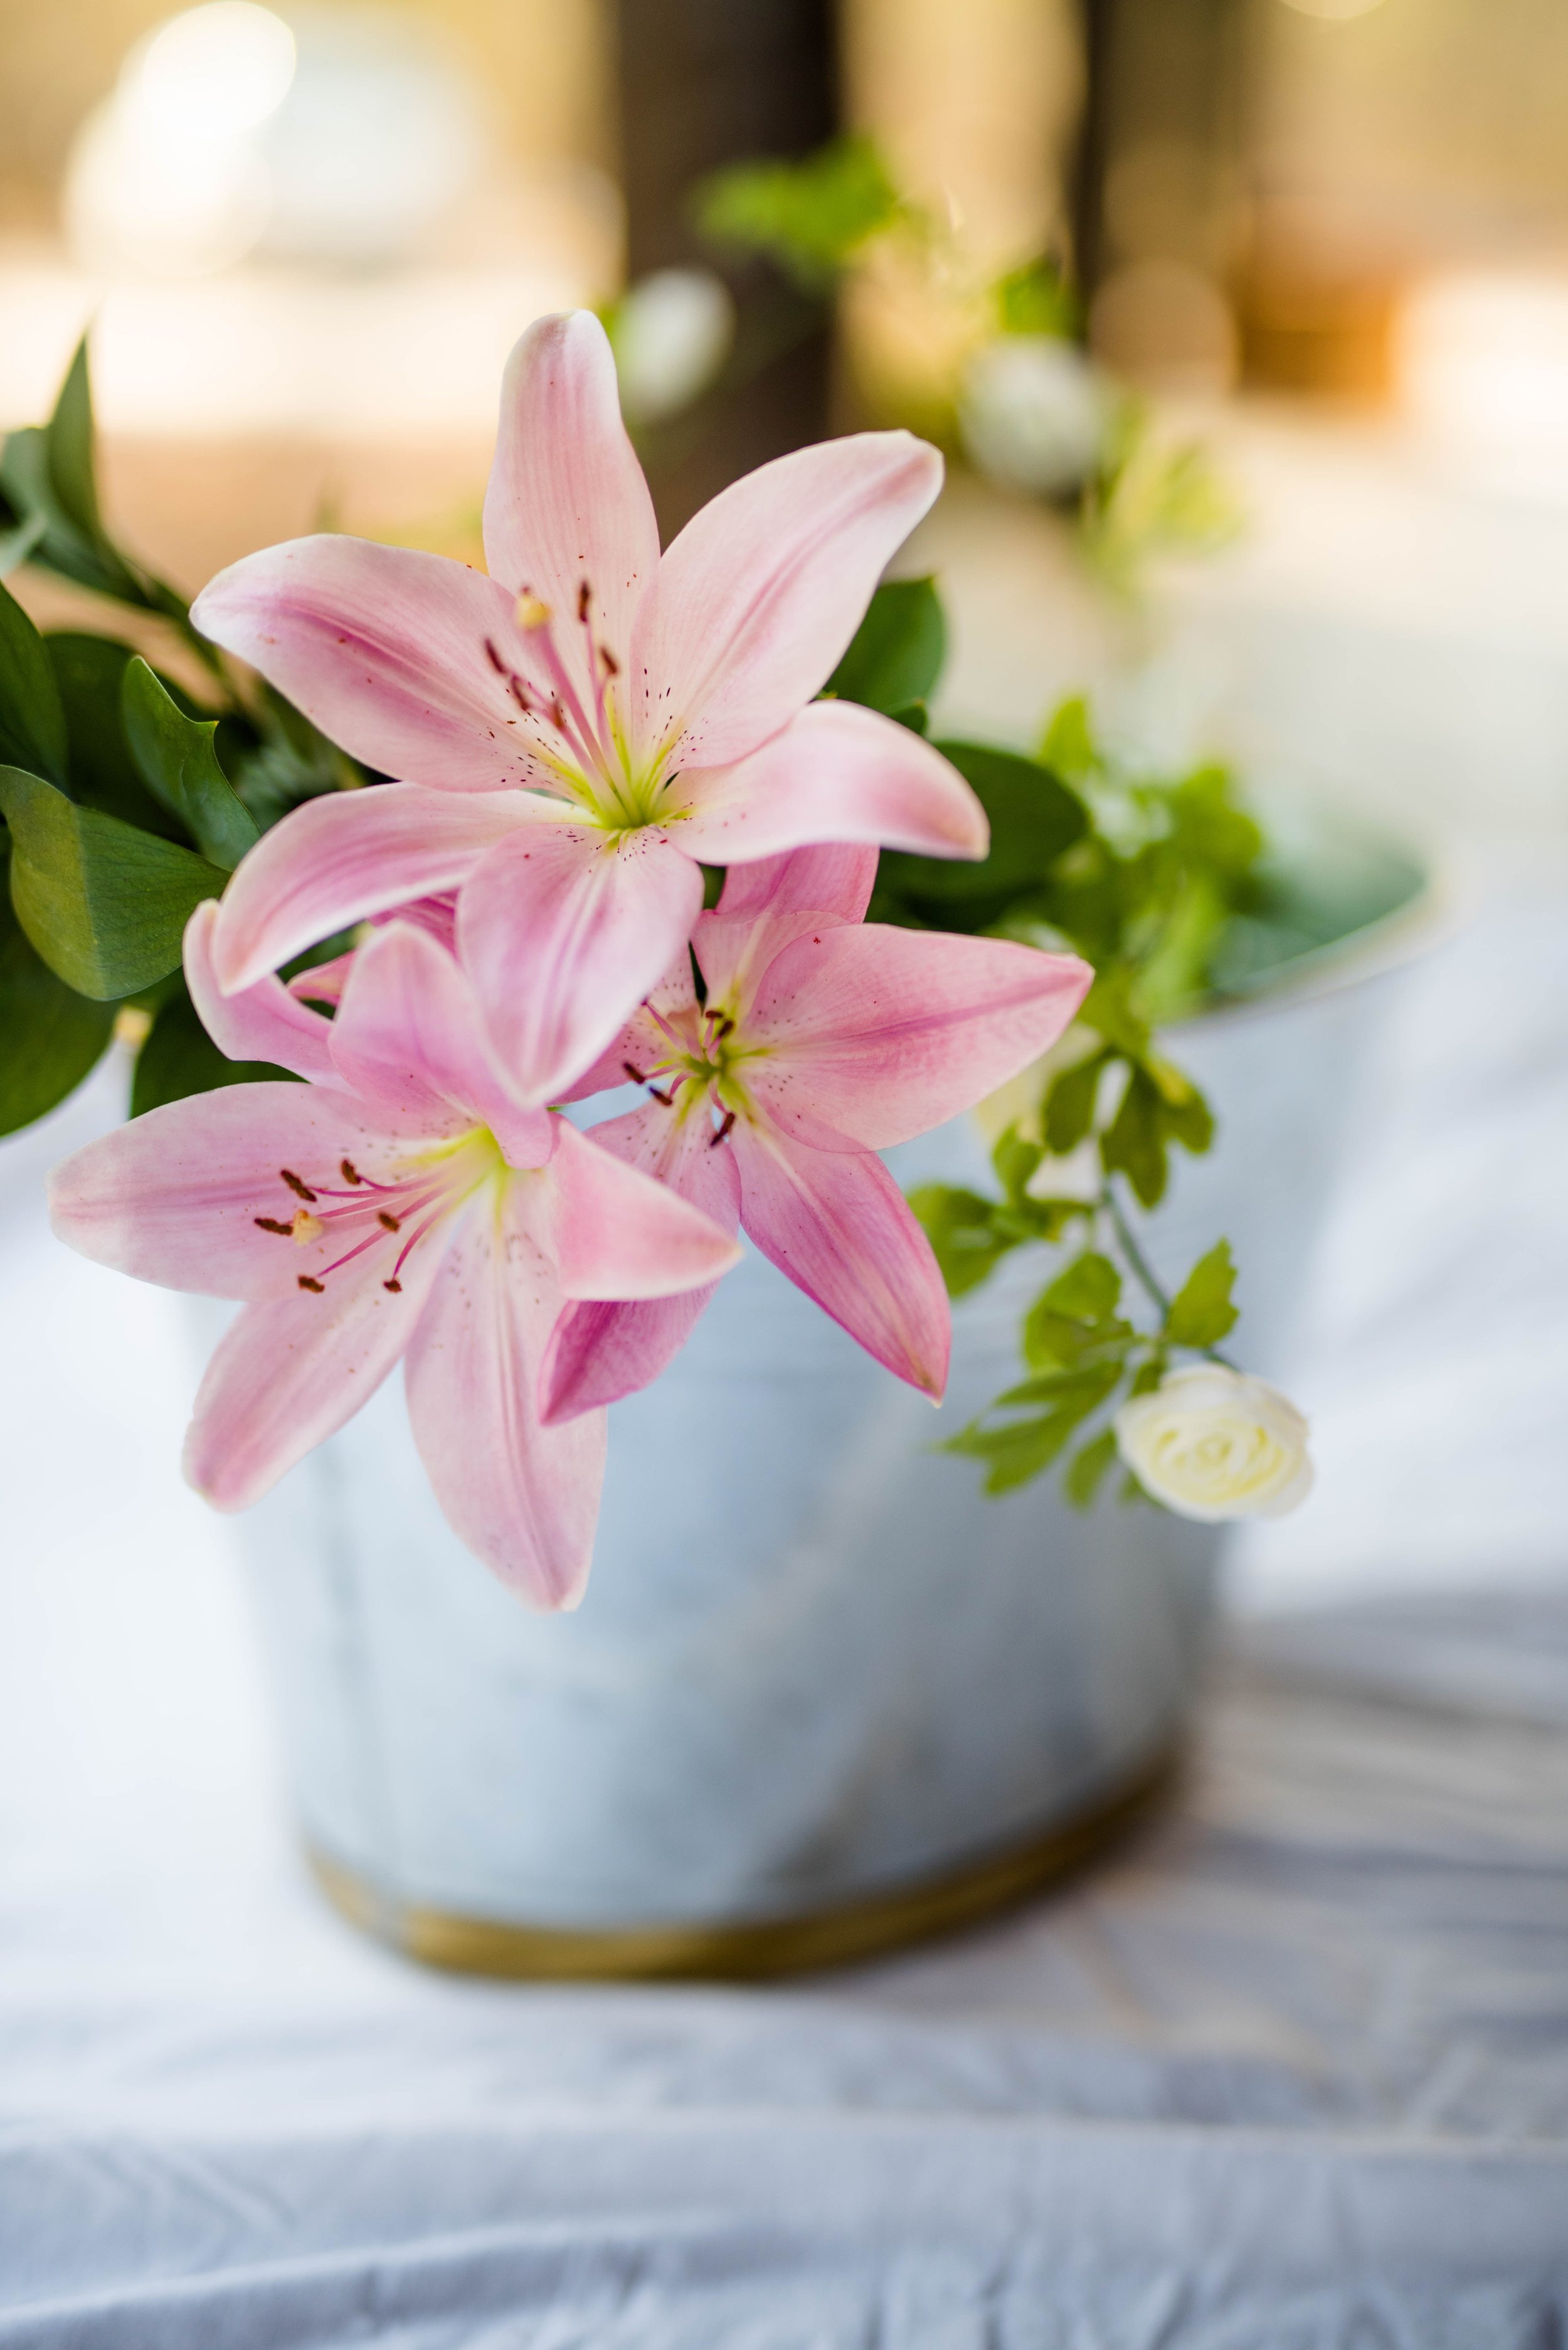 Lilies - Lilies are another very popular Valentine's choice.